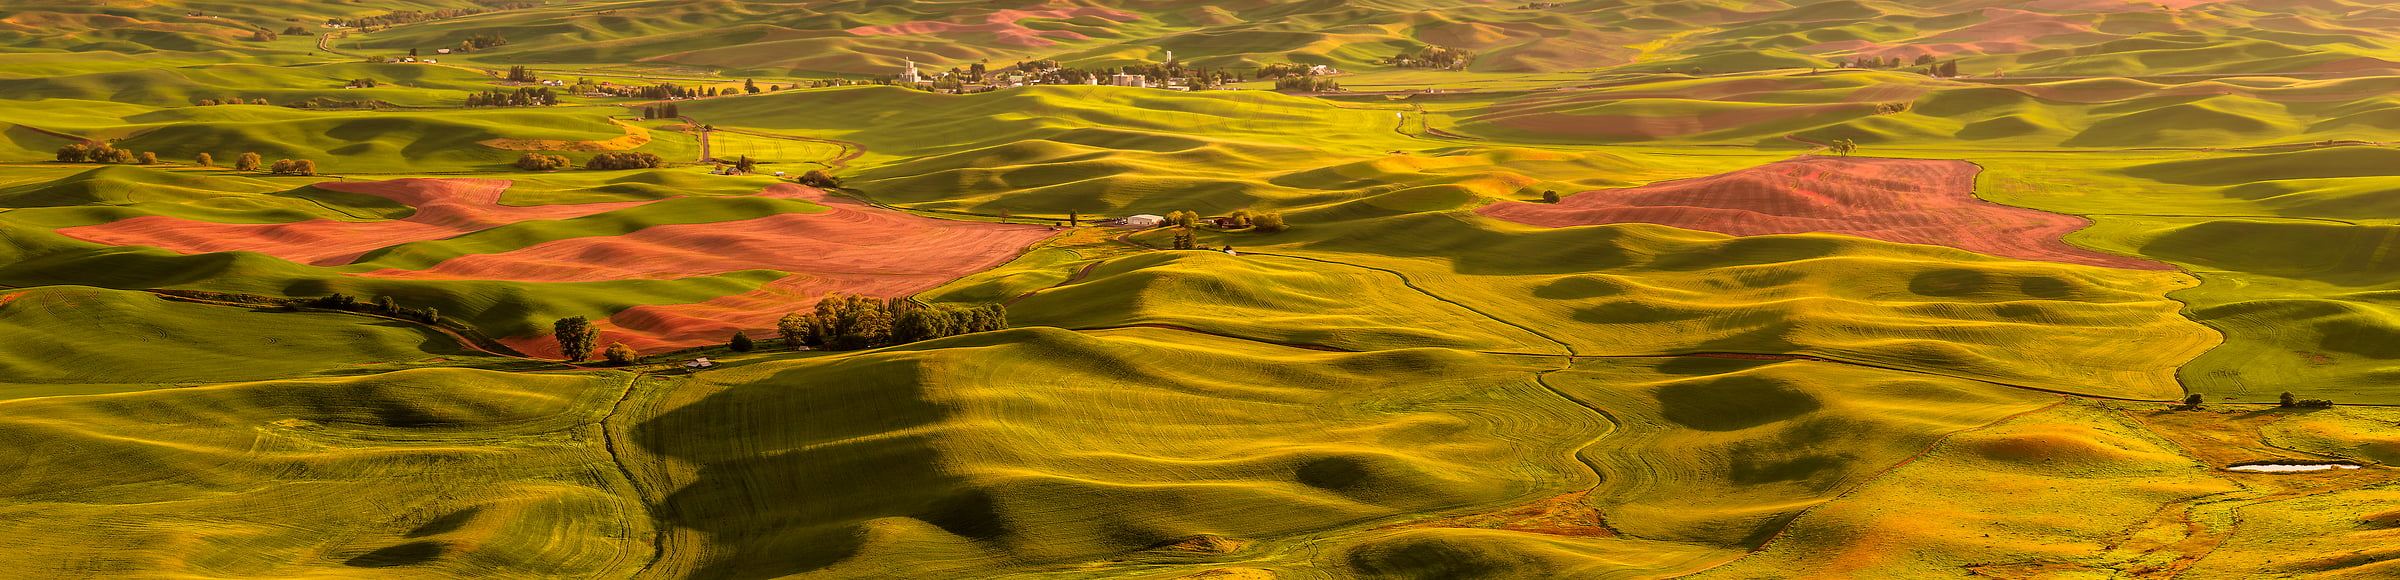 142 megapixels! A very high resolution, large-format VAST photo print of farms; landscape photograph created by Chris Collacott in Palouse, WA, USA